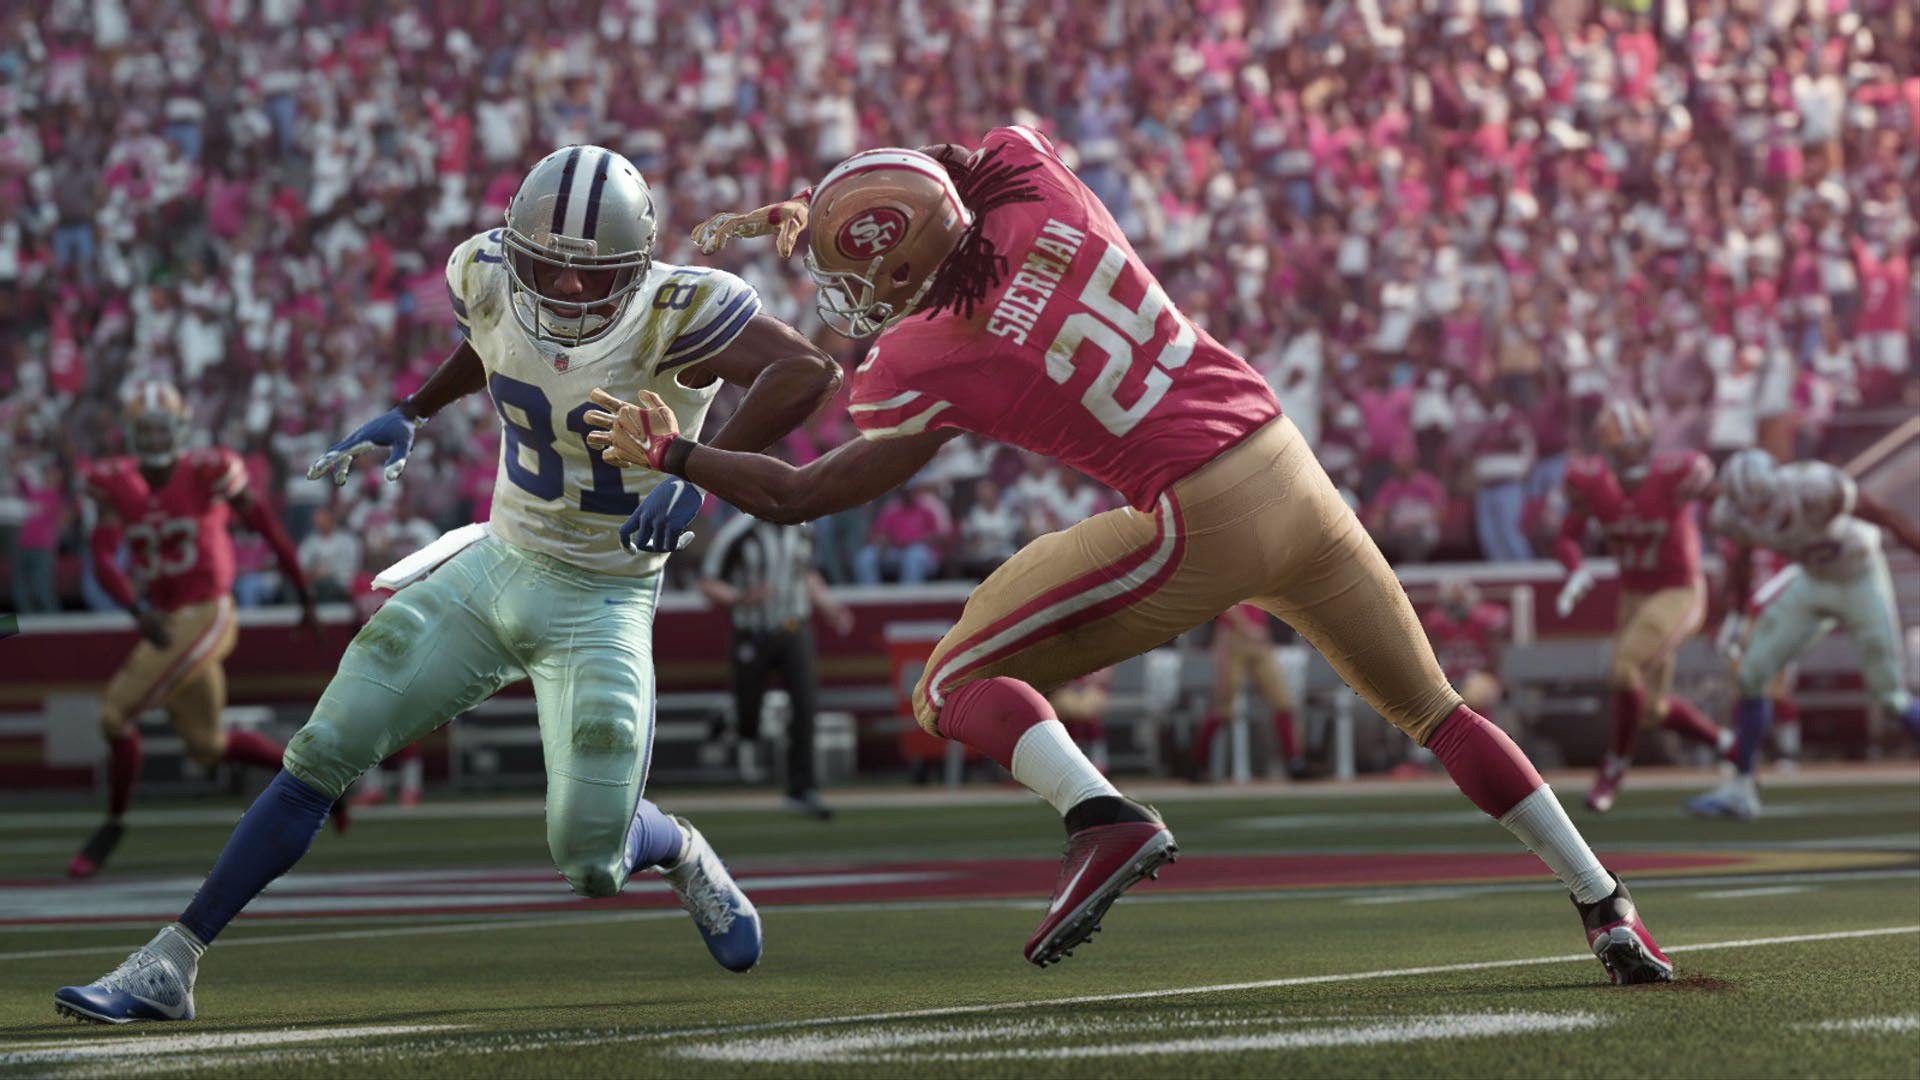 The 8 Best Pc Football Games In 2021